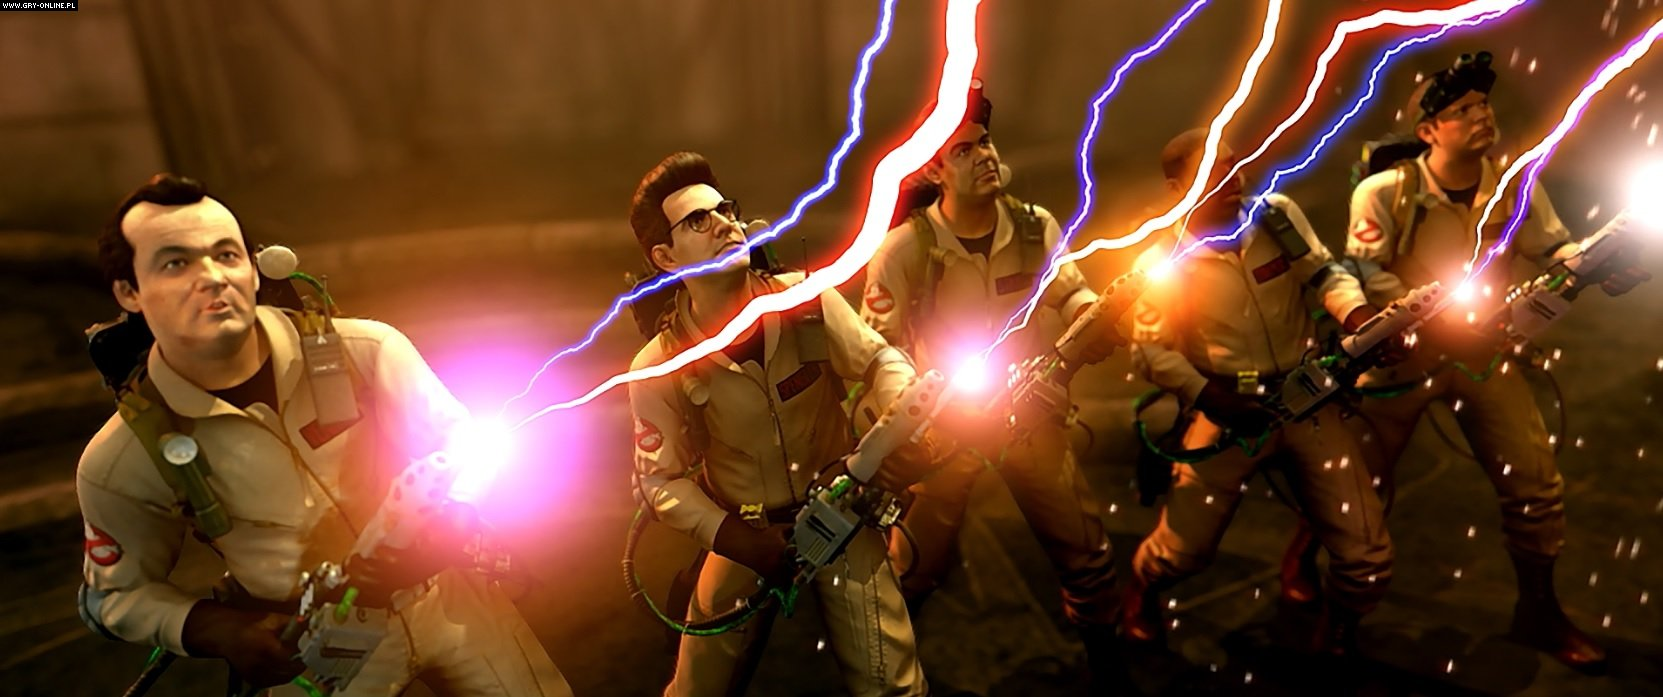 Ghostbusters: The Video Game Remastered PC, PS4, XONE, Switch Games Image 3/6, Saber Interactive, Mad Dog